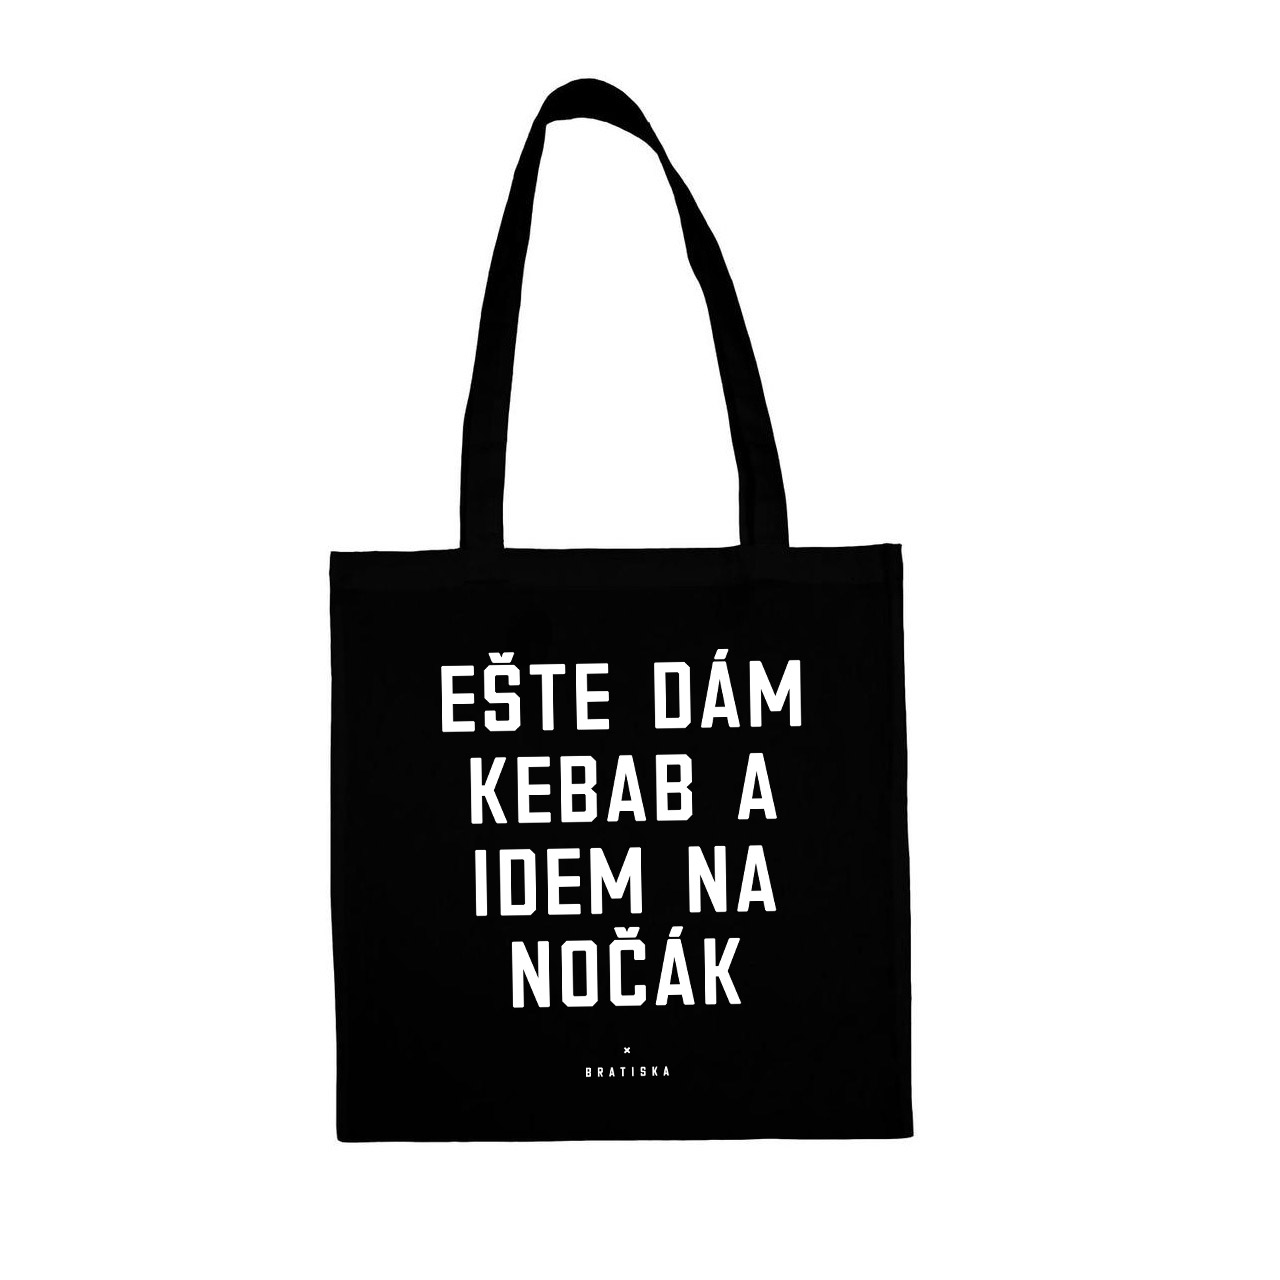 Ešte dám kebab a idem na nočák